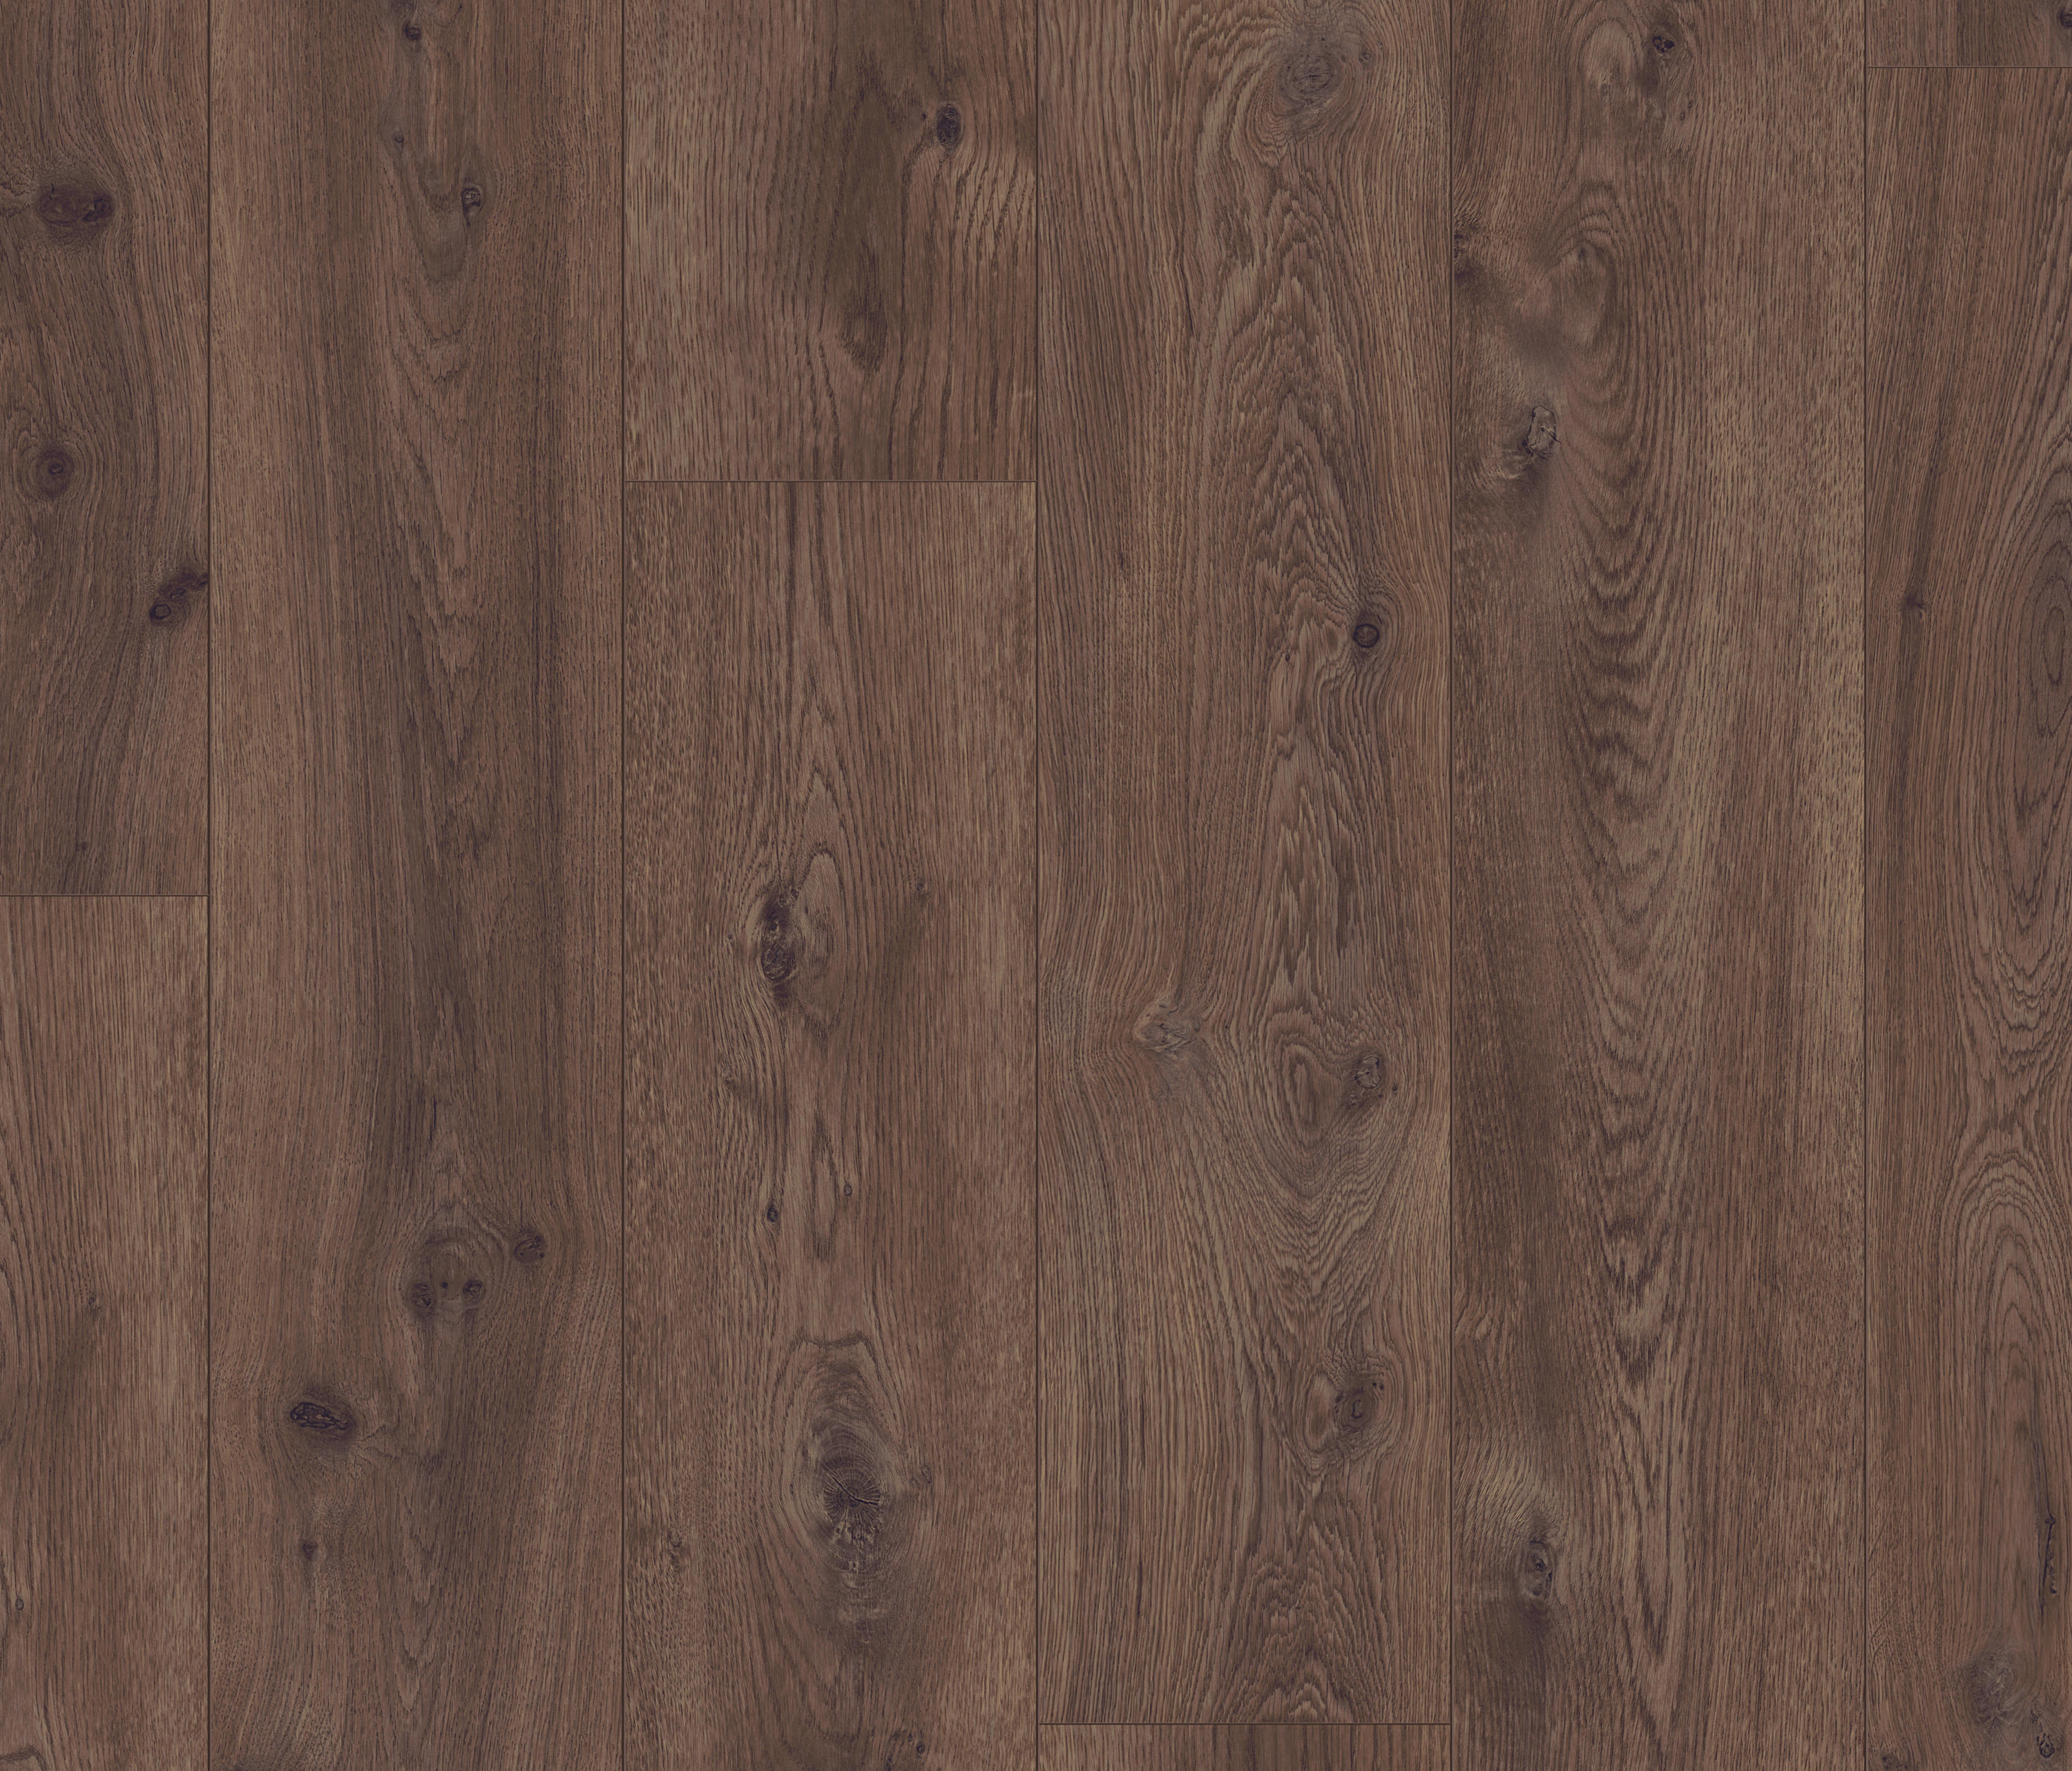 Long Plank Chocolate Oak Laminate Flooring From Pergo